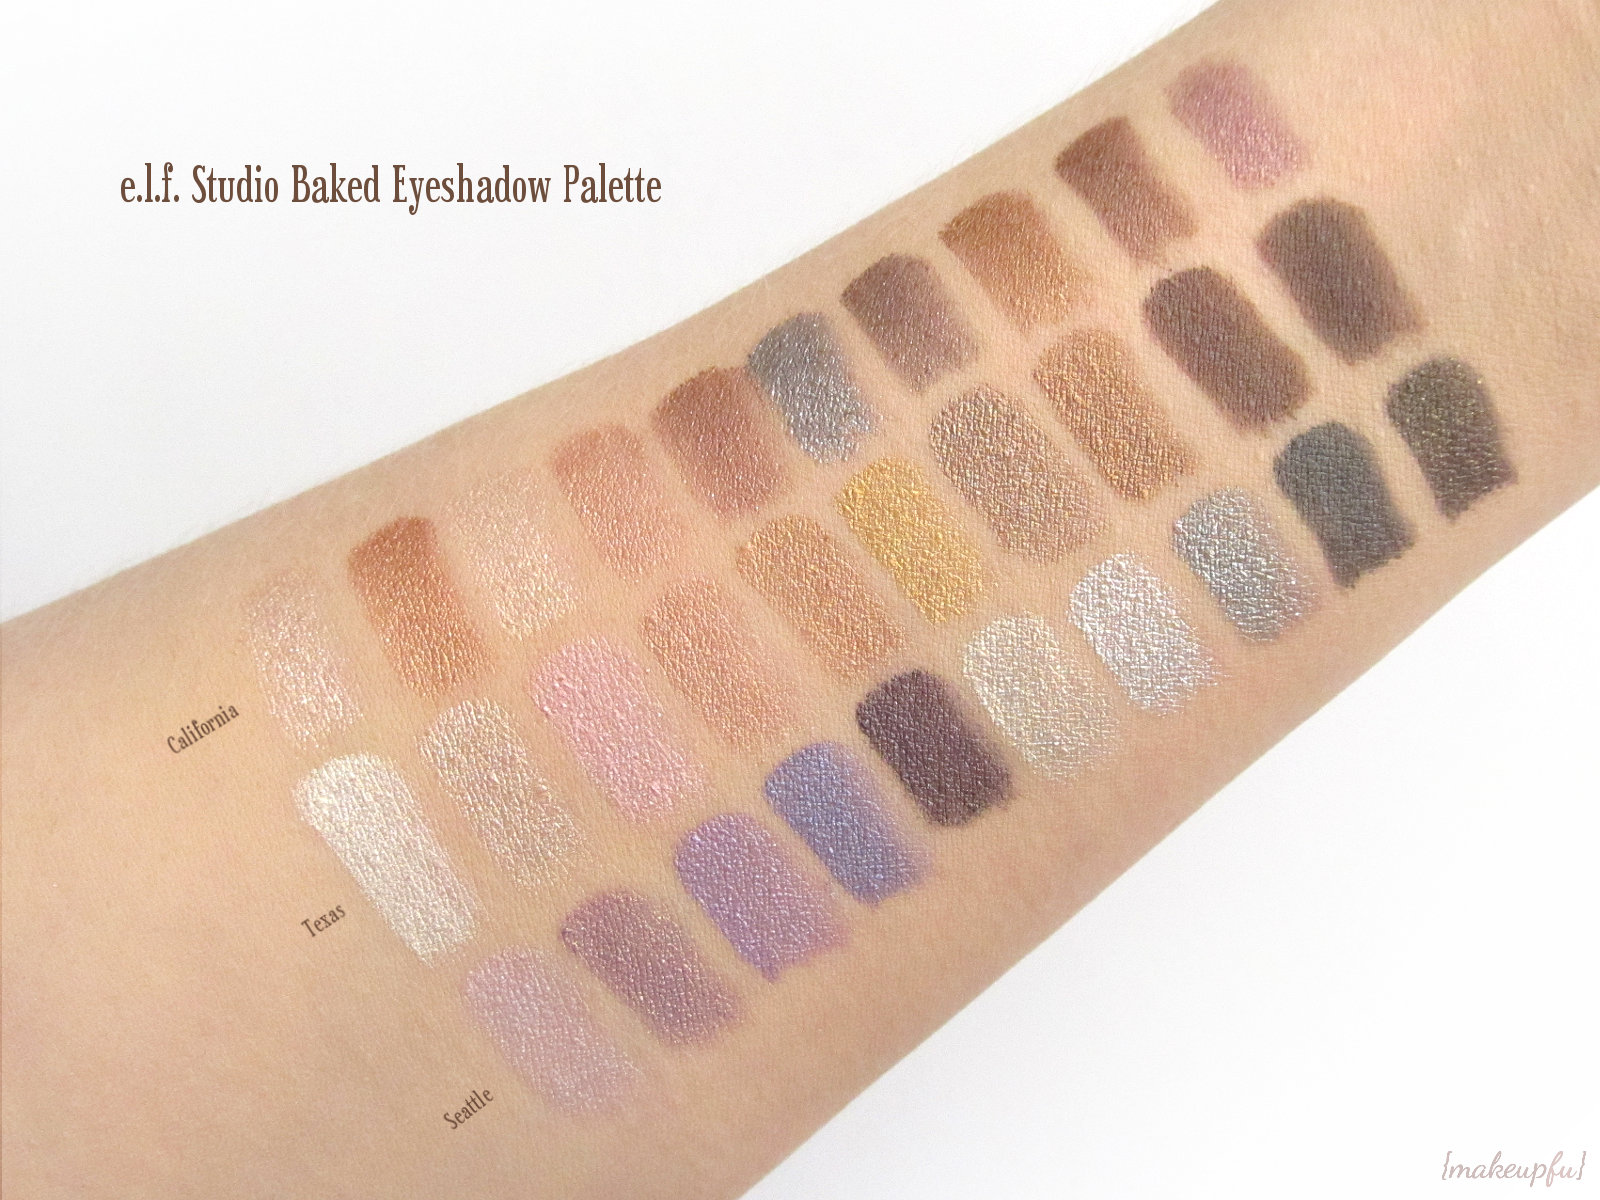 Prism Eyeshadow Palette - Naked by e.l.f. #8